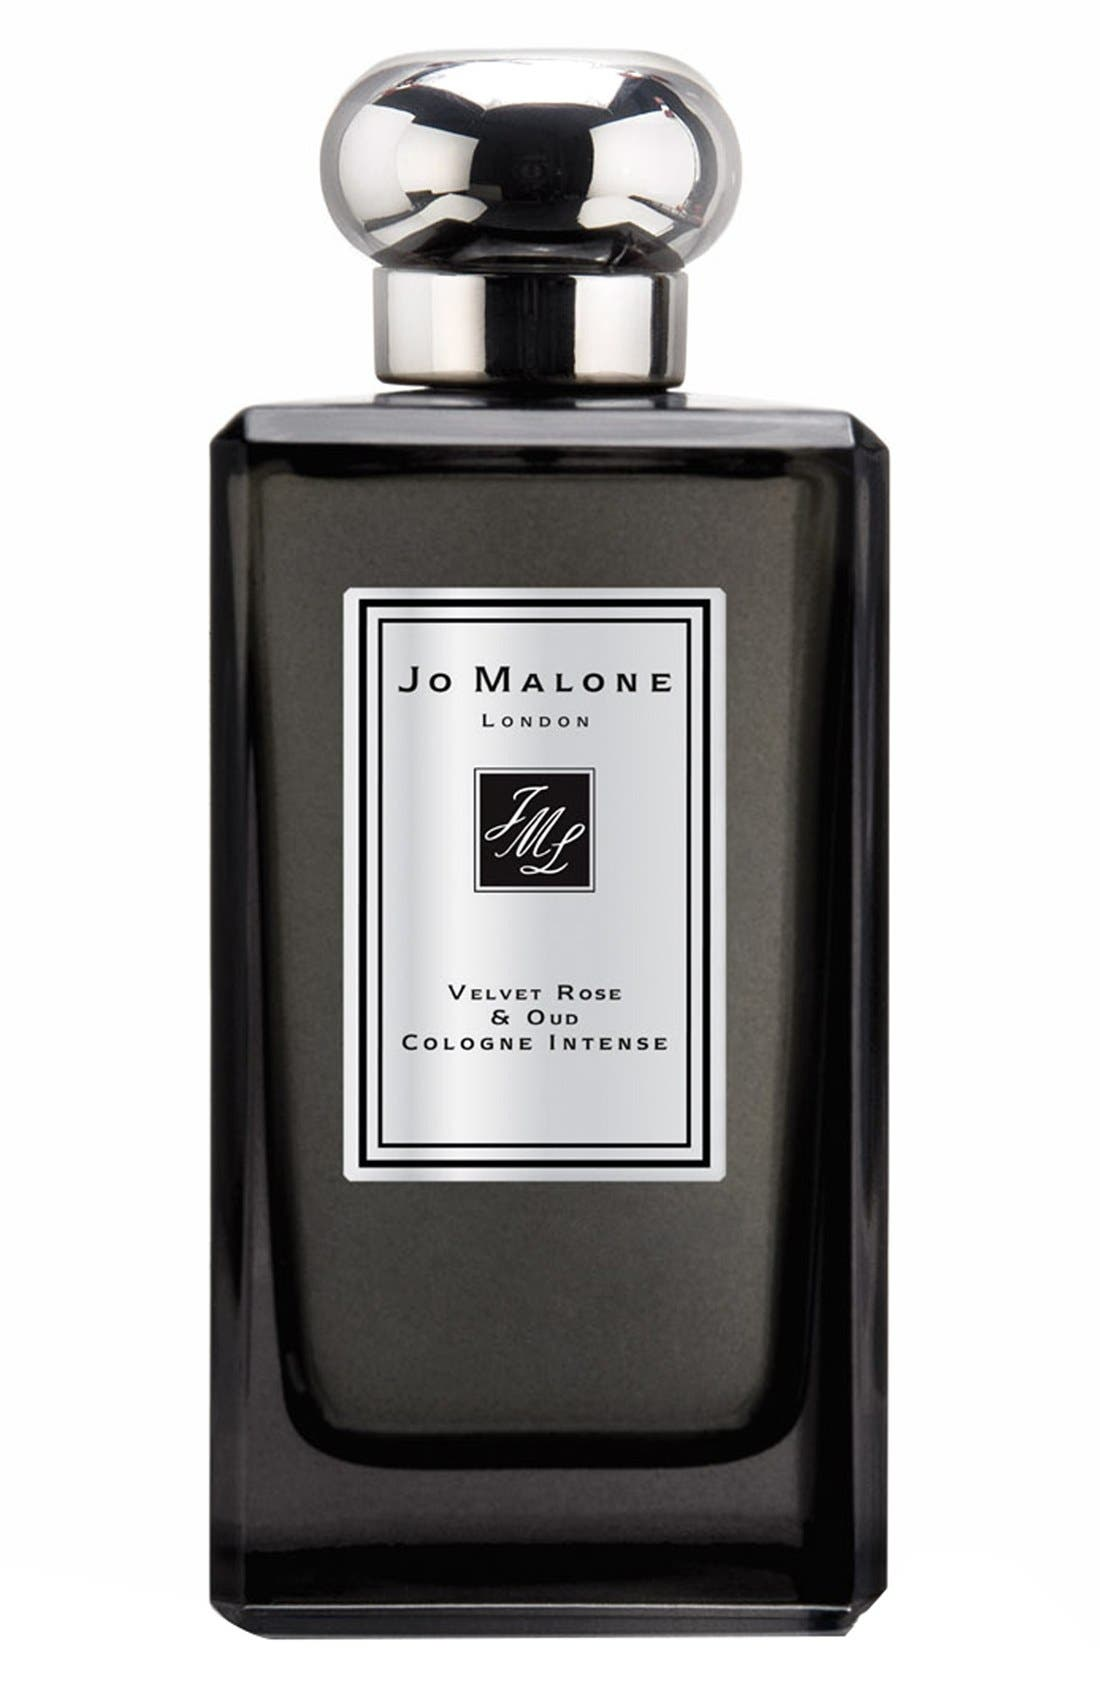 Jo Malone London™ Velvet Rose & Oud Cologne Intense